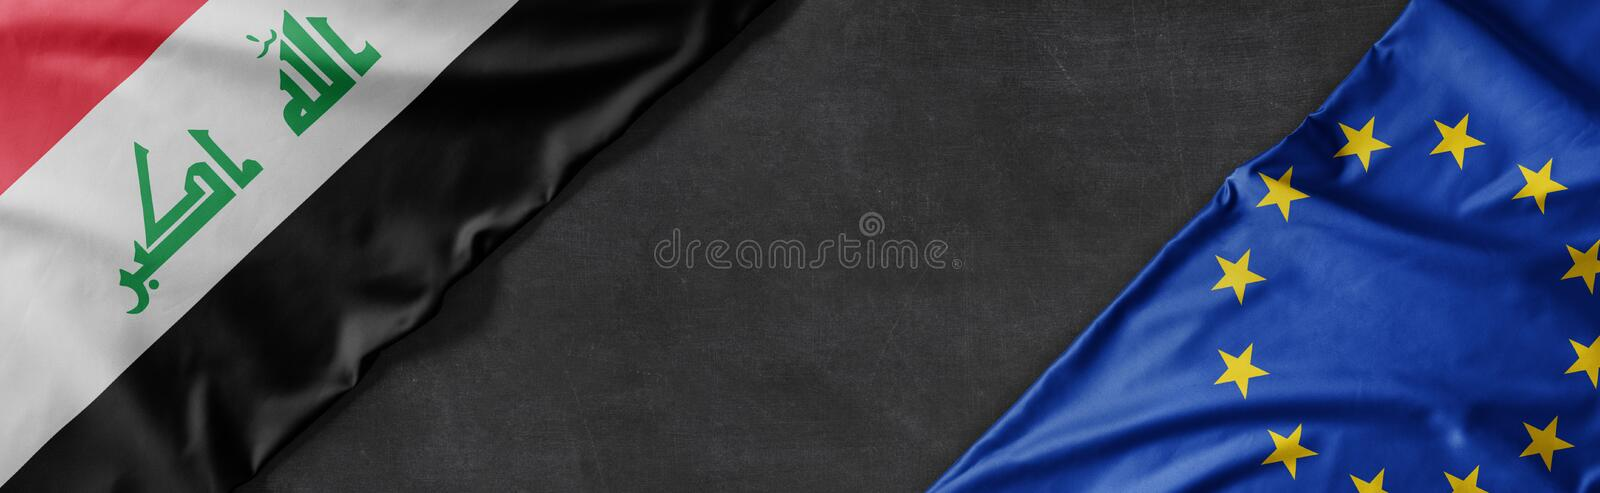 Flags of Iraq and the European Union with copy space royalty free stock photos